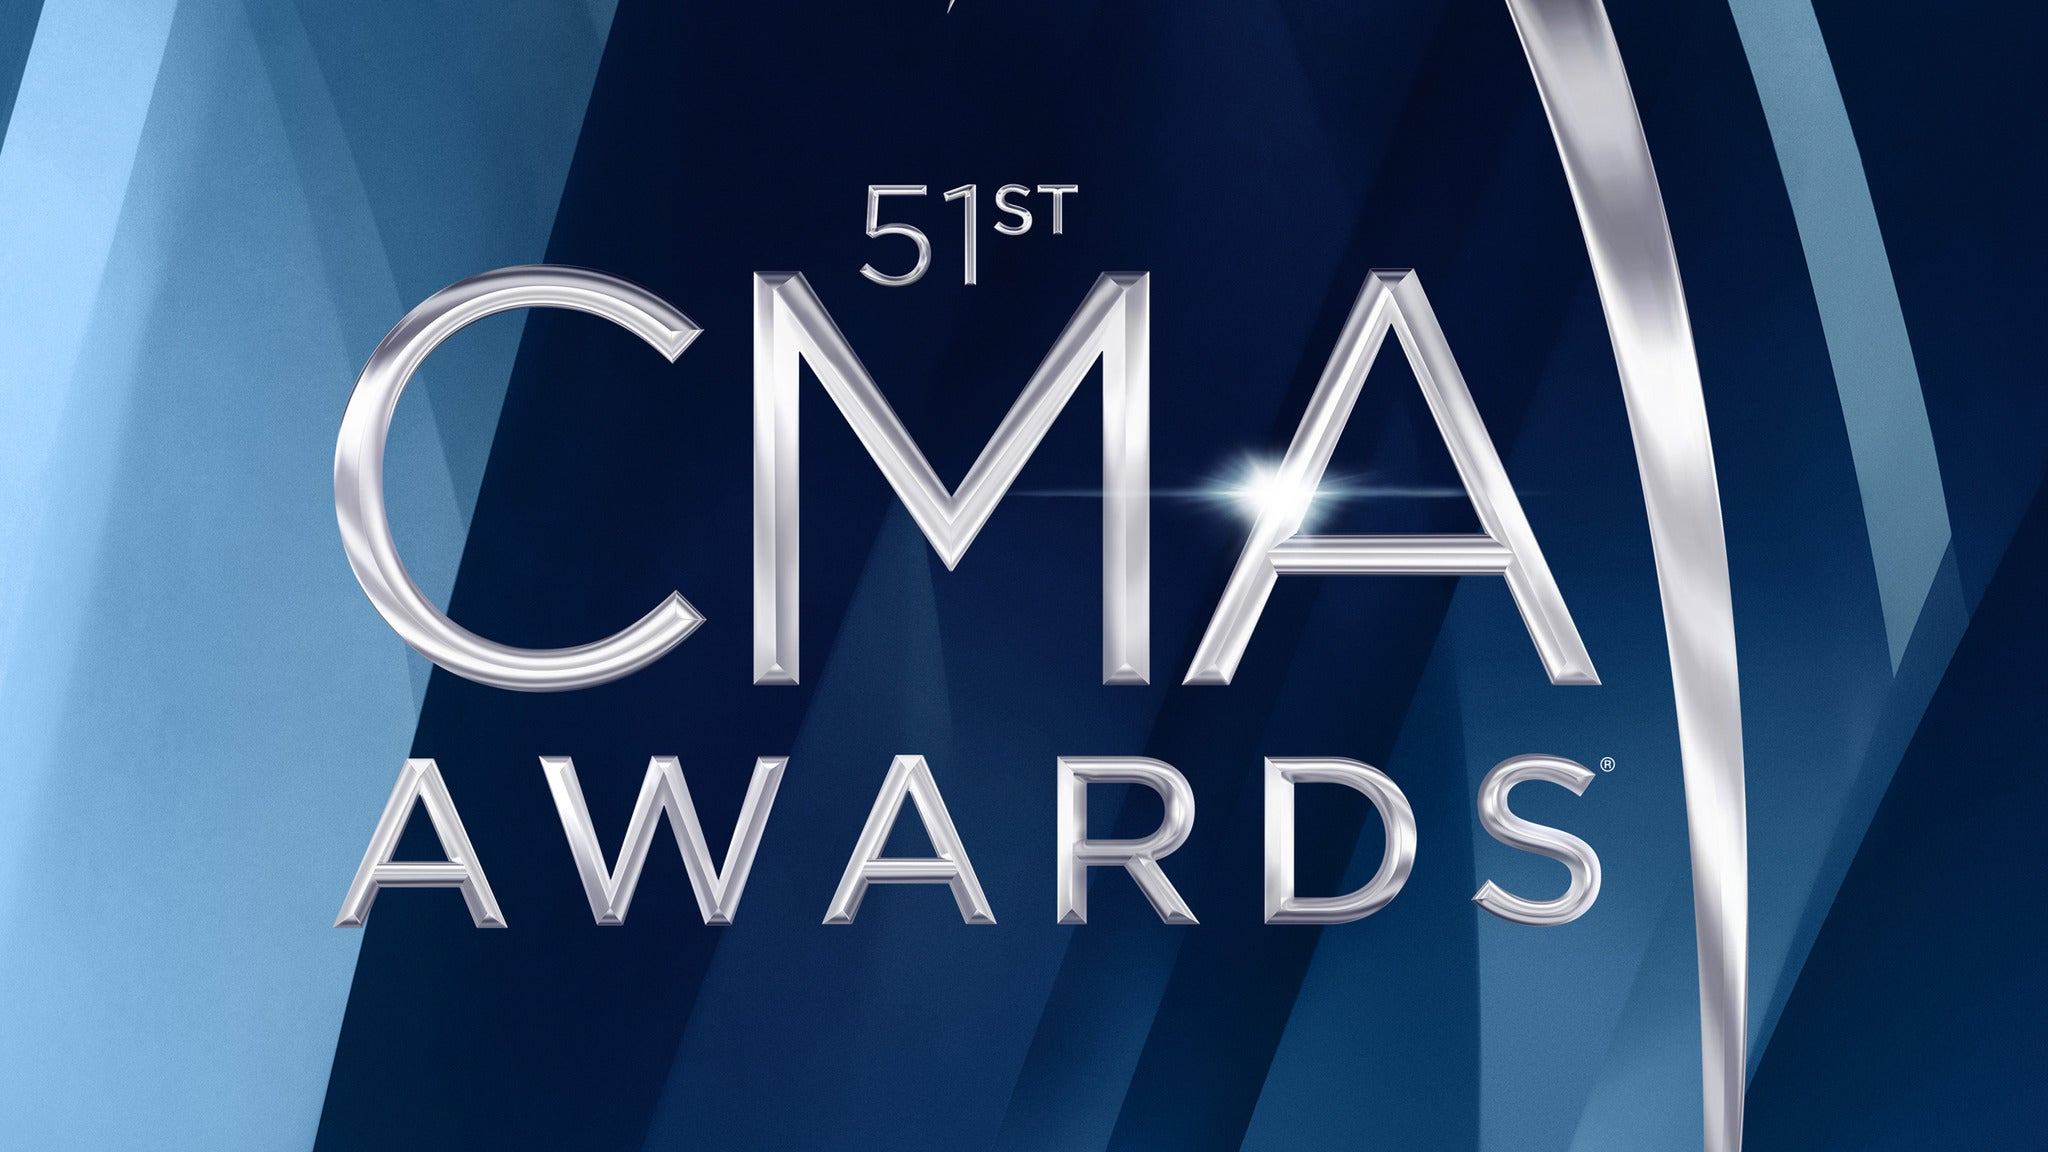 51st Annual CMA Awards at Bridgestone Arena